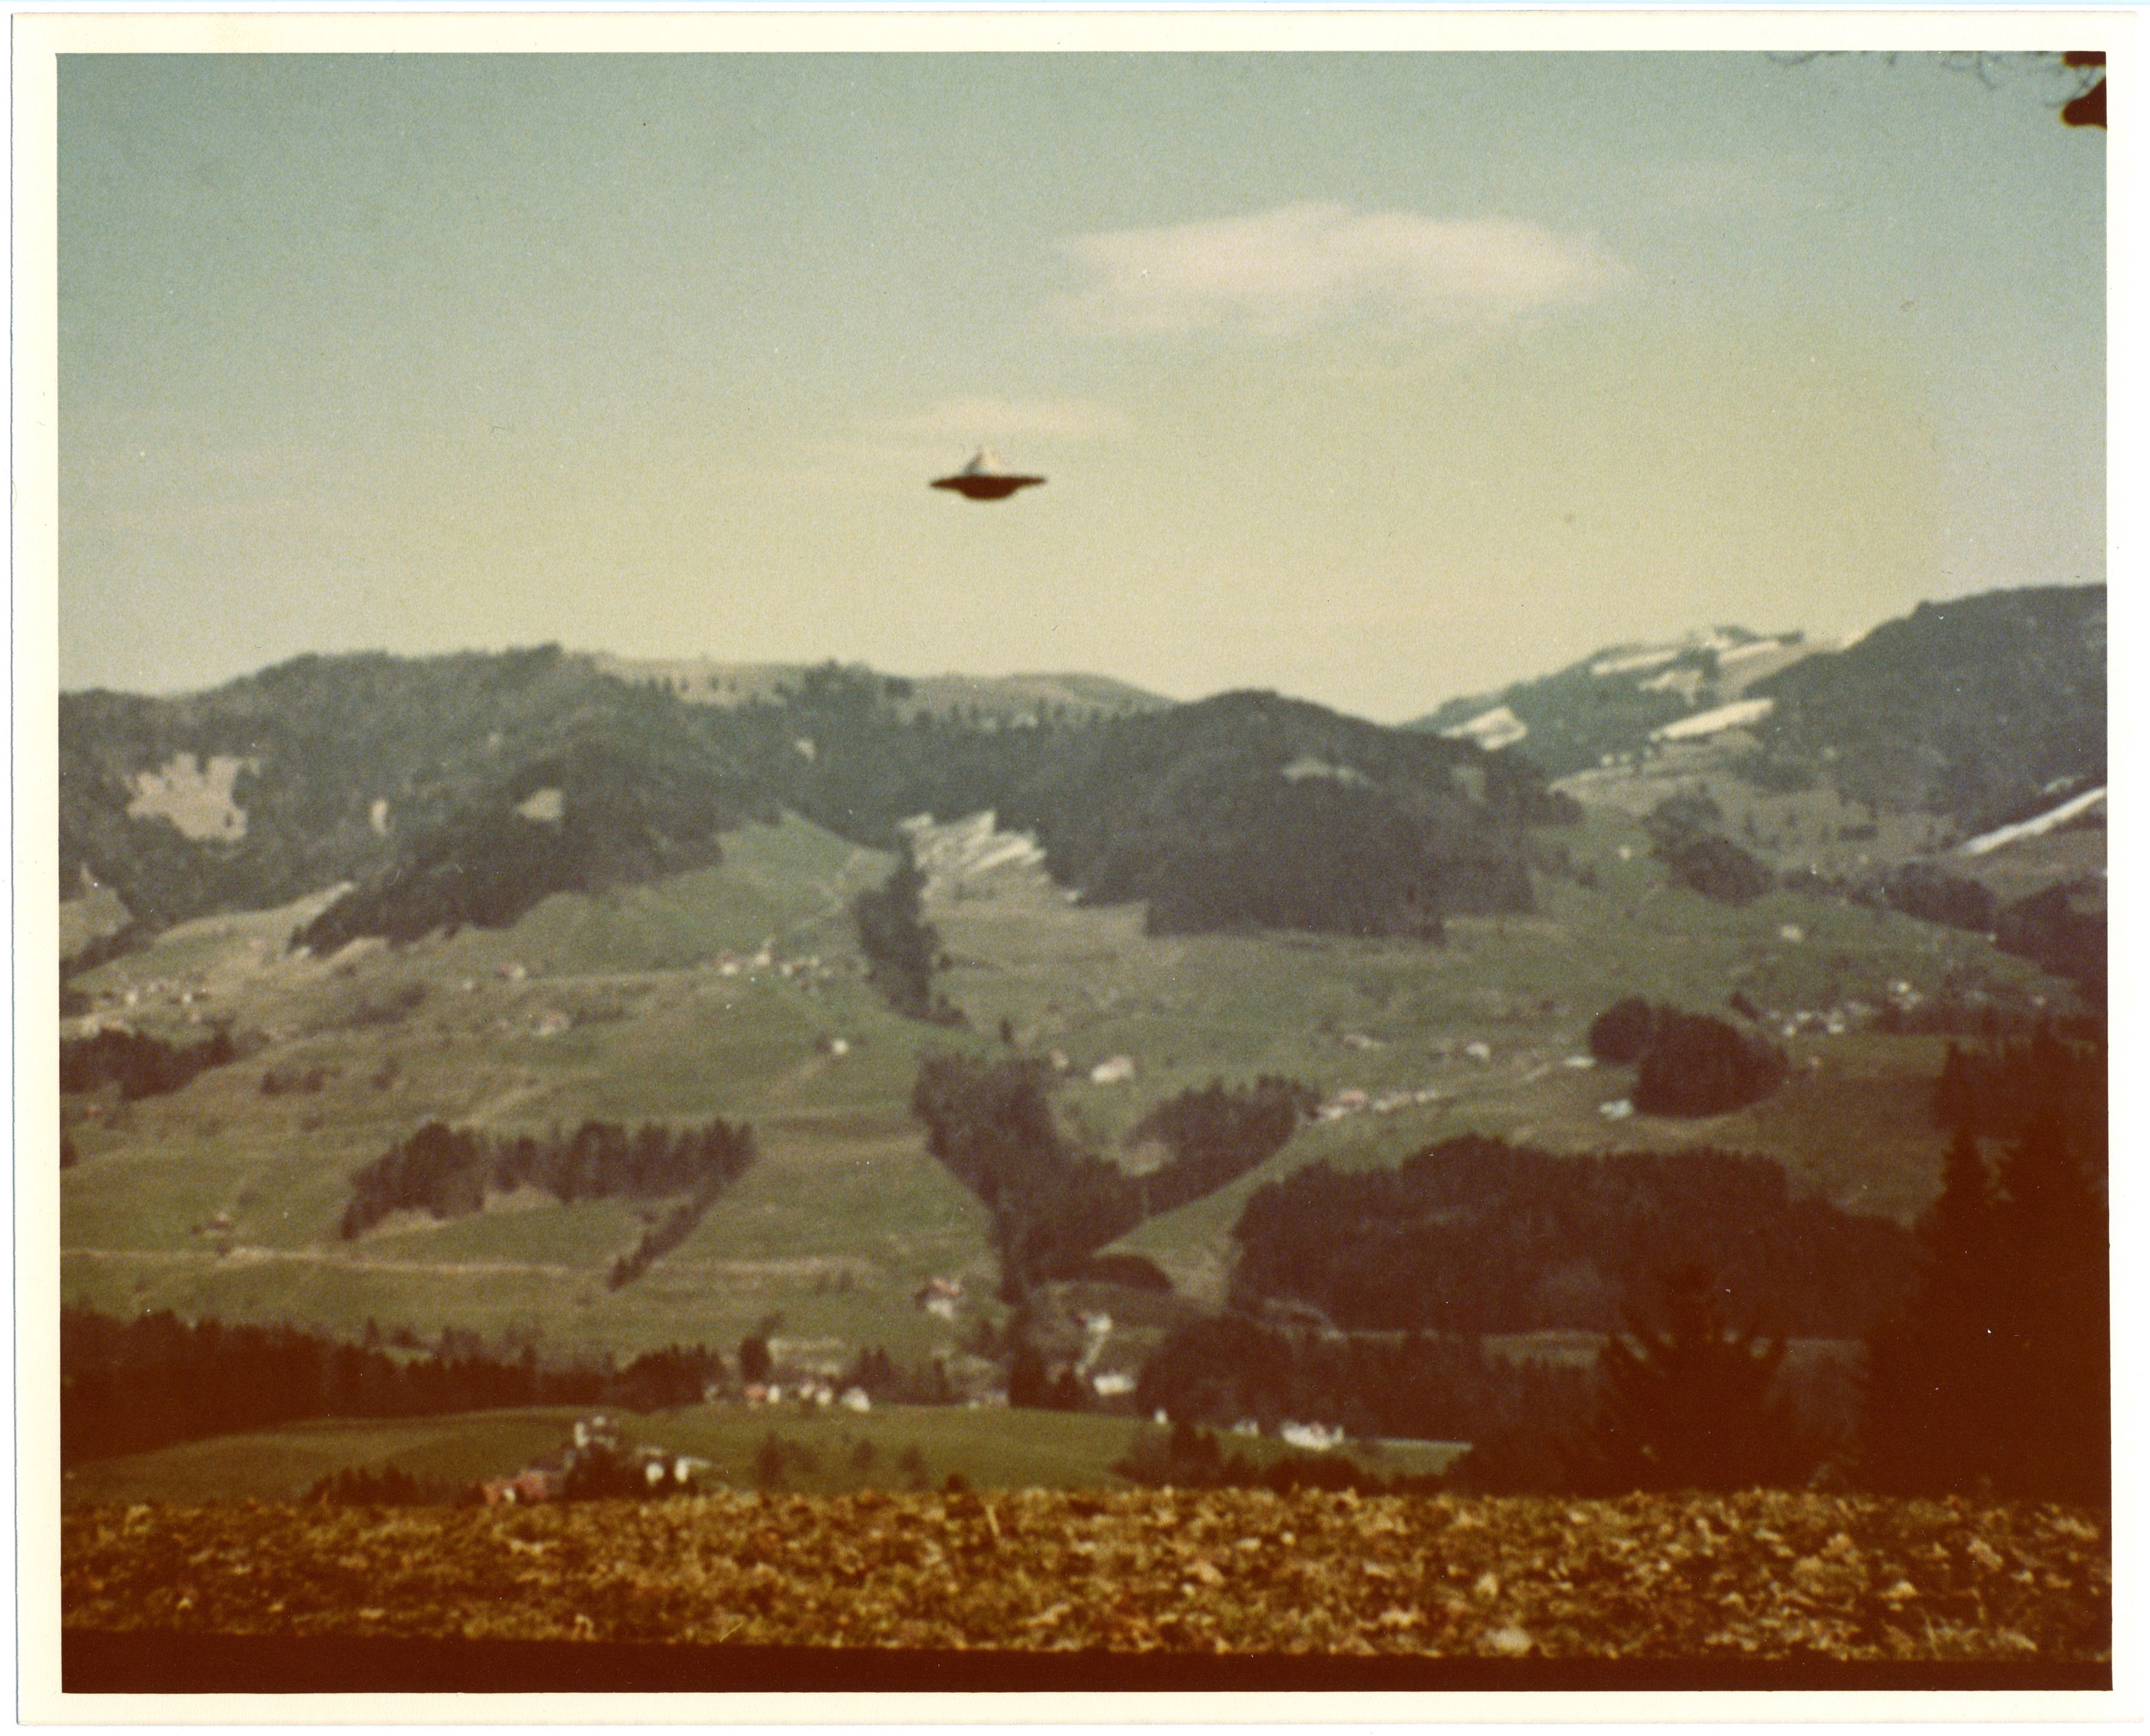 Photograph by Billy Meier From the UFO Photo Archives of Wendelle Stevens Collection of Gordon MacDonald